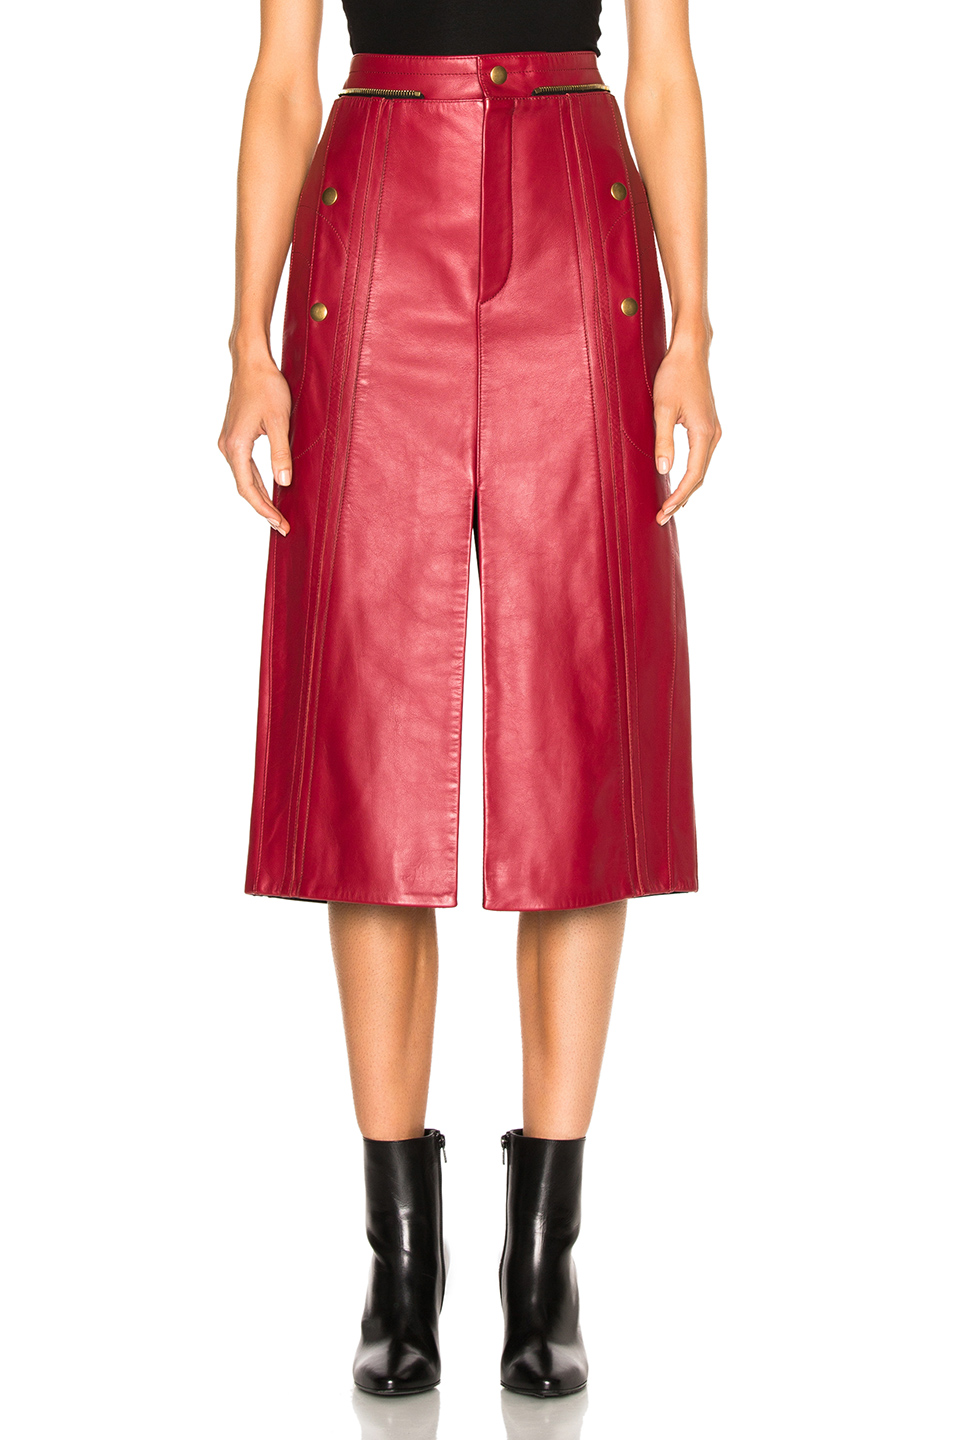 Chloe Leather & Nubuck Biker Skirt In Red. , Pinky Red